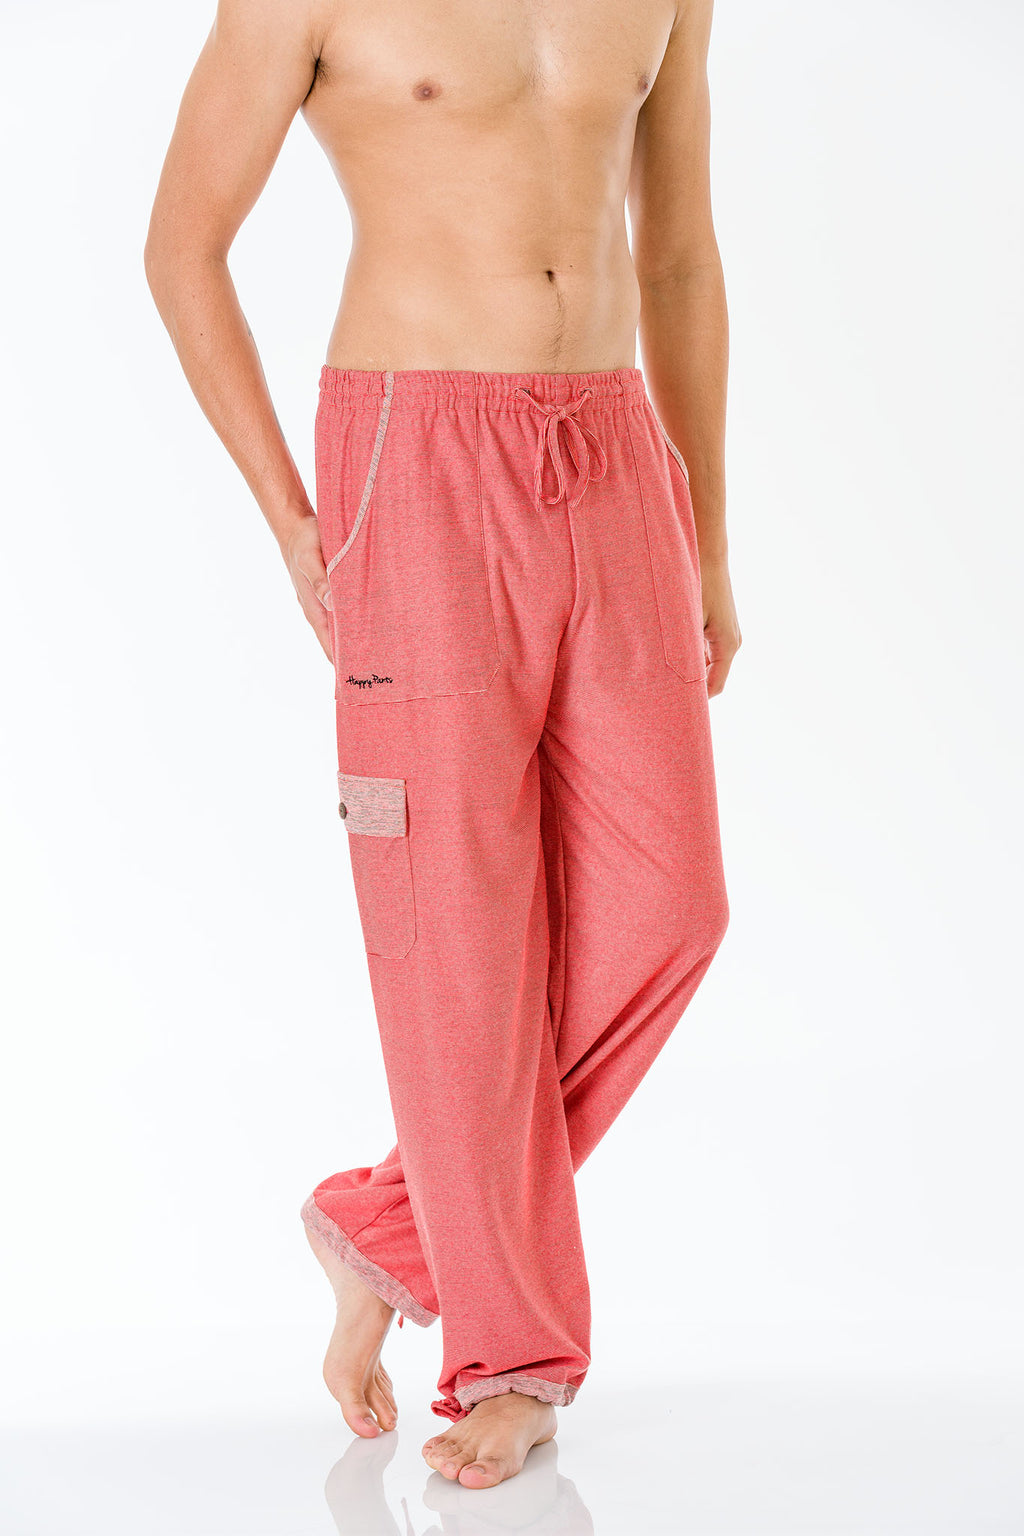 Blossom Pink Pants